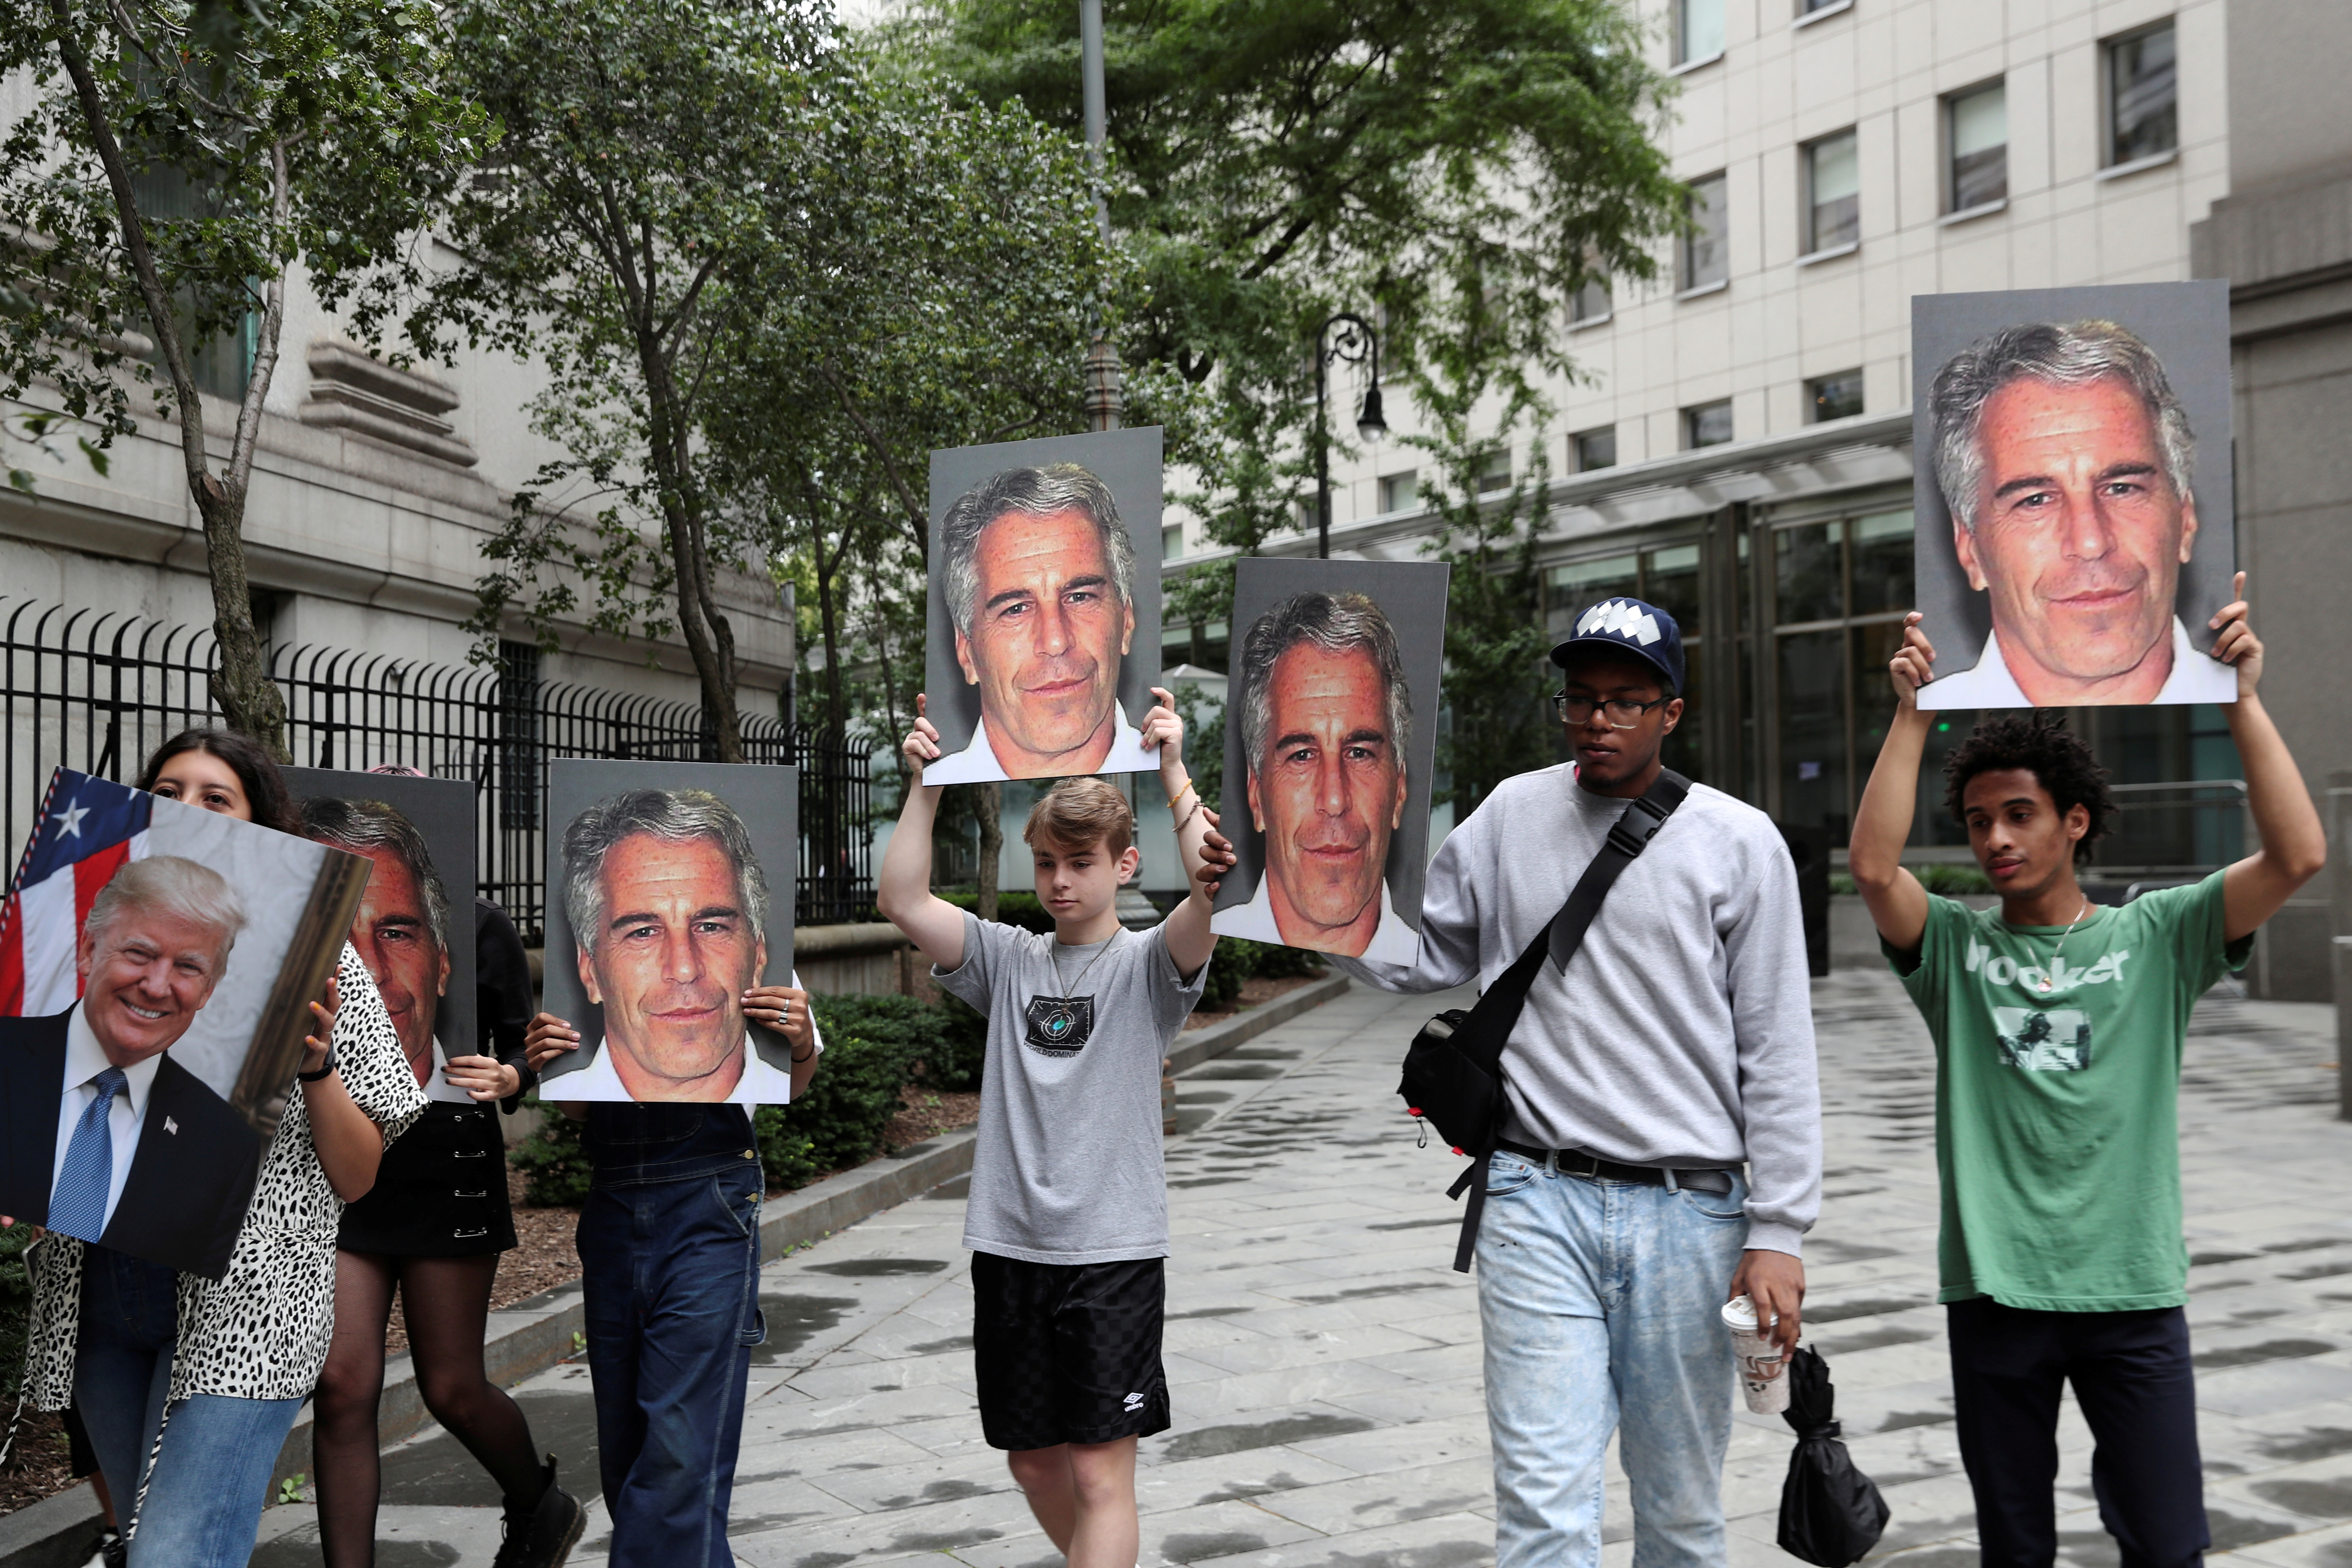 Demonstrators hold signs aloft protesting Jeffrey Epstein, as he awaits arraignment in the Southern District of New York on charges of sex trafficking of minors and conspiracy to commit sex trafficking of minors, in New York, U.S., July 8, 2019. REUTERS/Shannon Stapleton